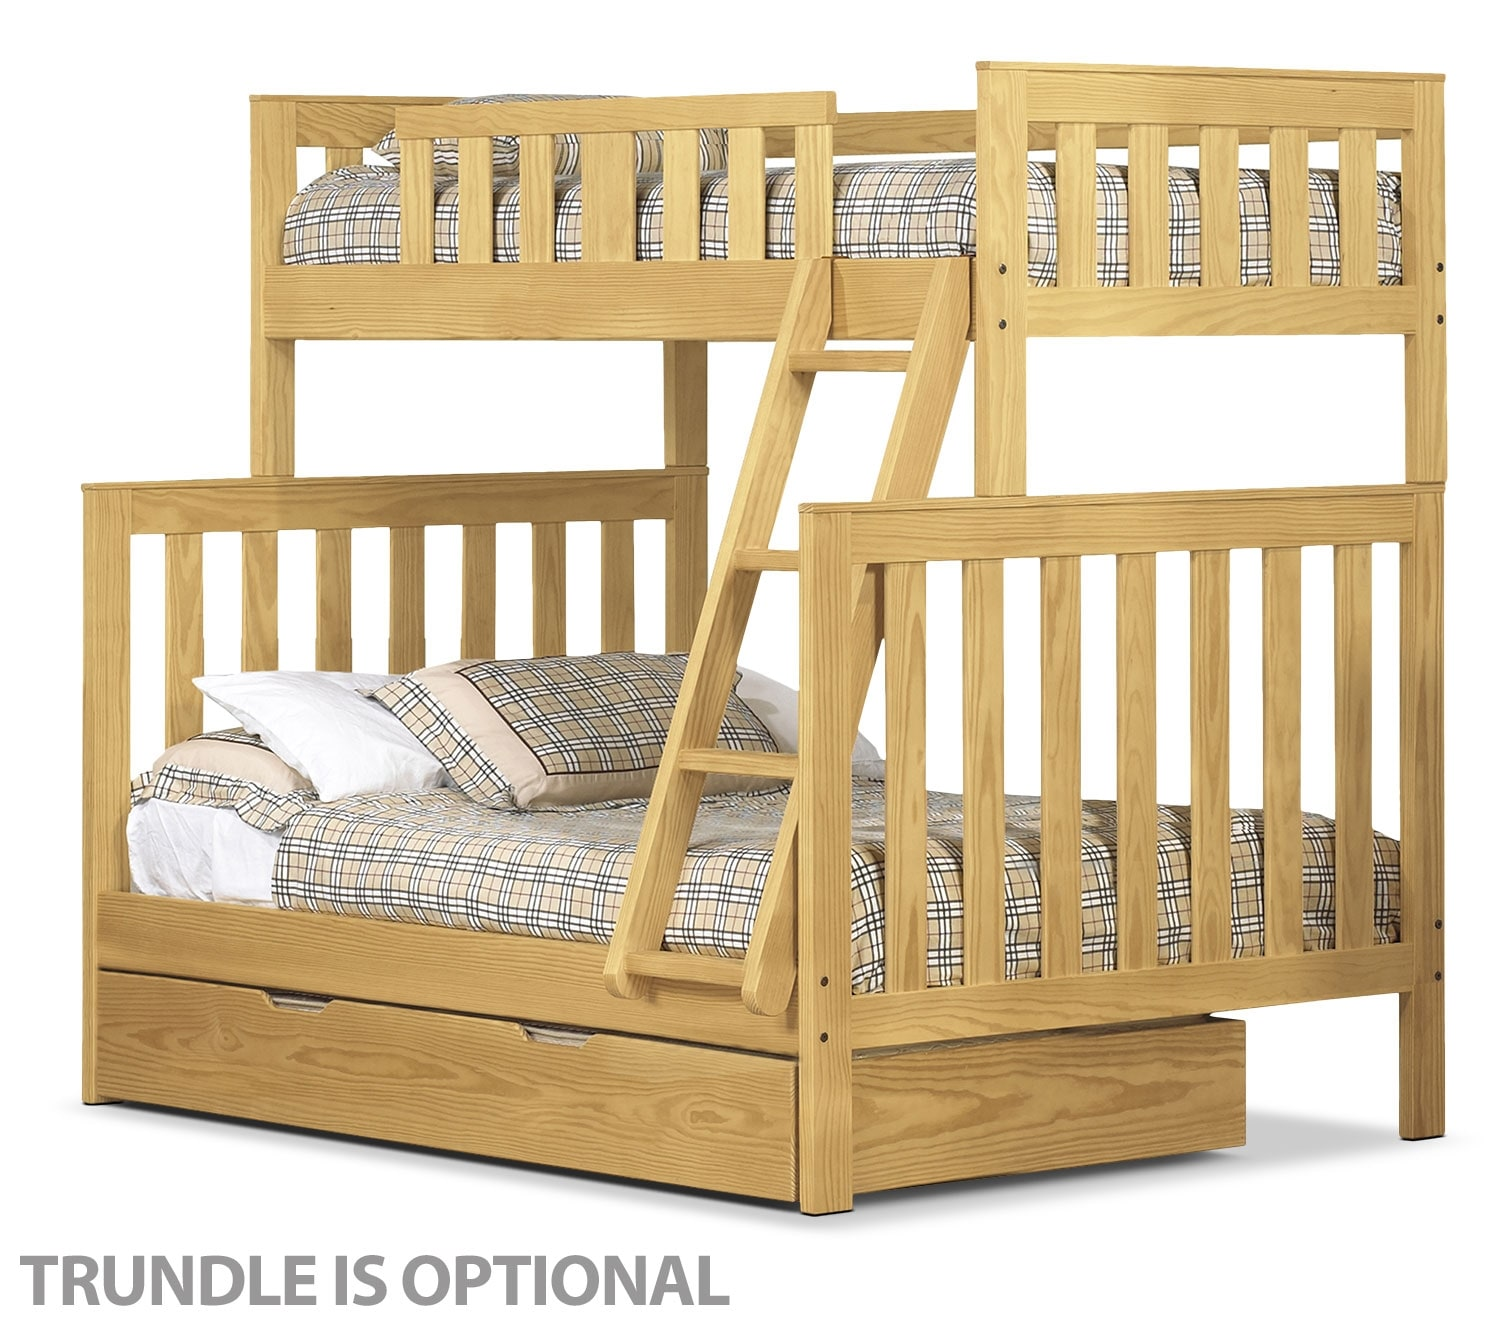 Bedroom Furniture - Taylor Twin/Full Bunk Bed - Golden Oak